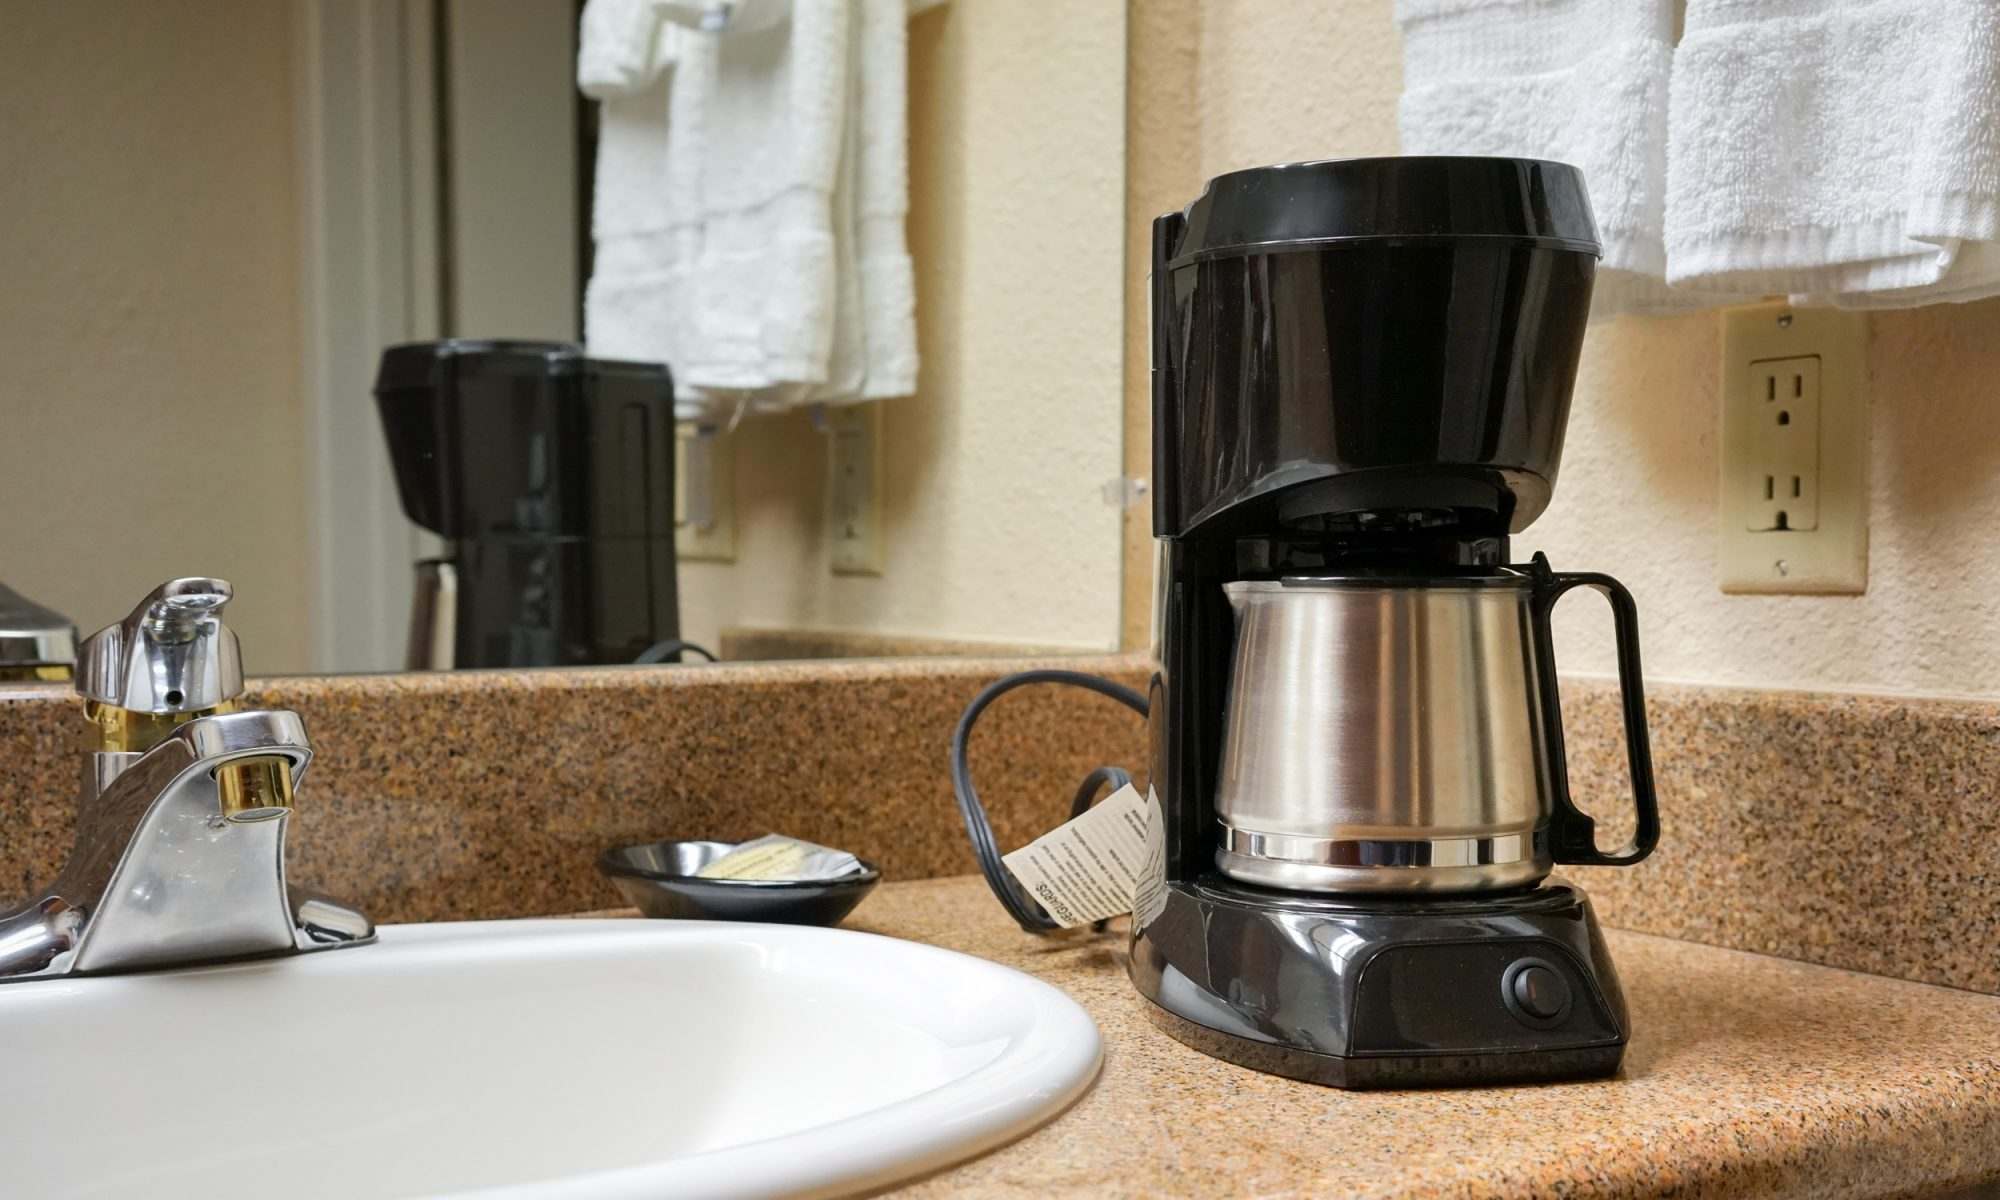 EC: A Plea for the Return of Crappy Hotel Room Coffee Makers